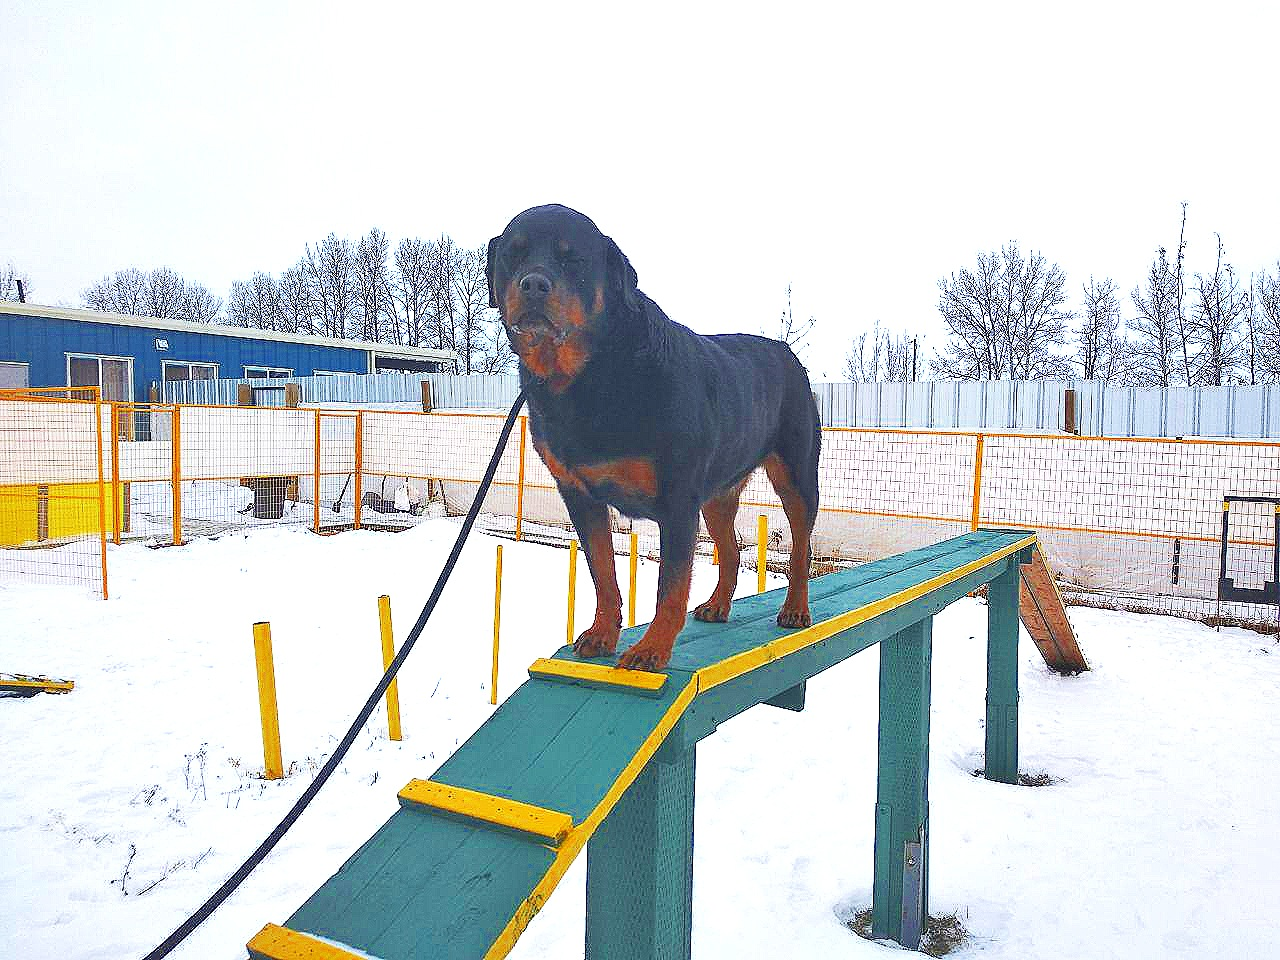 Training Facility Pet Hotel Boarding Kennel Dogs Paradise Resort